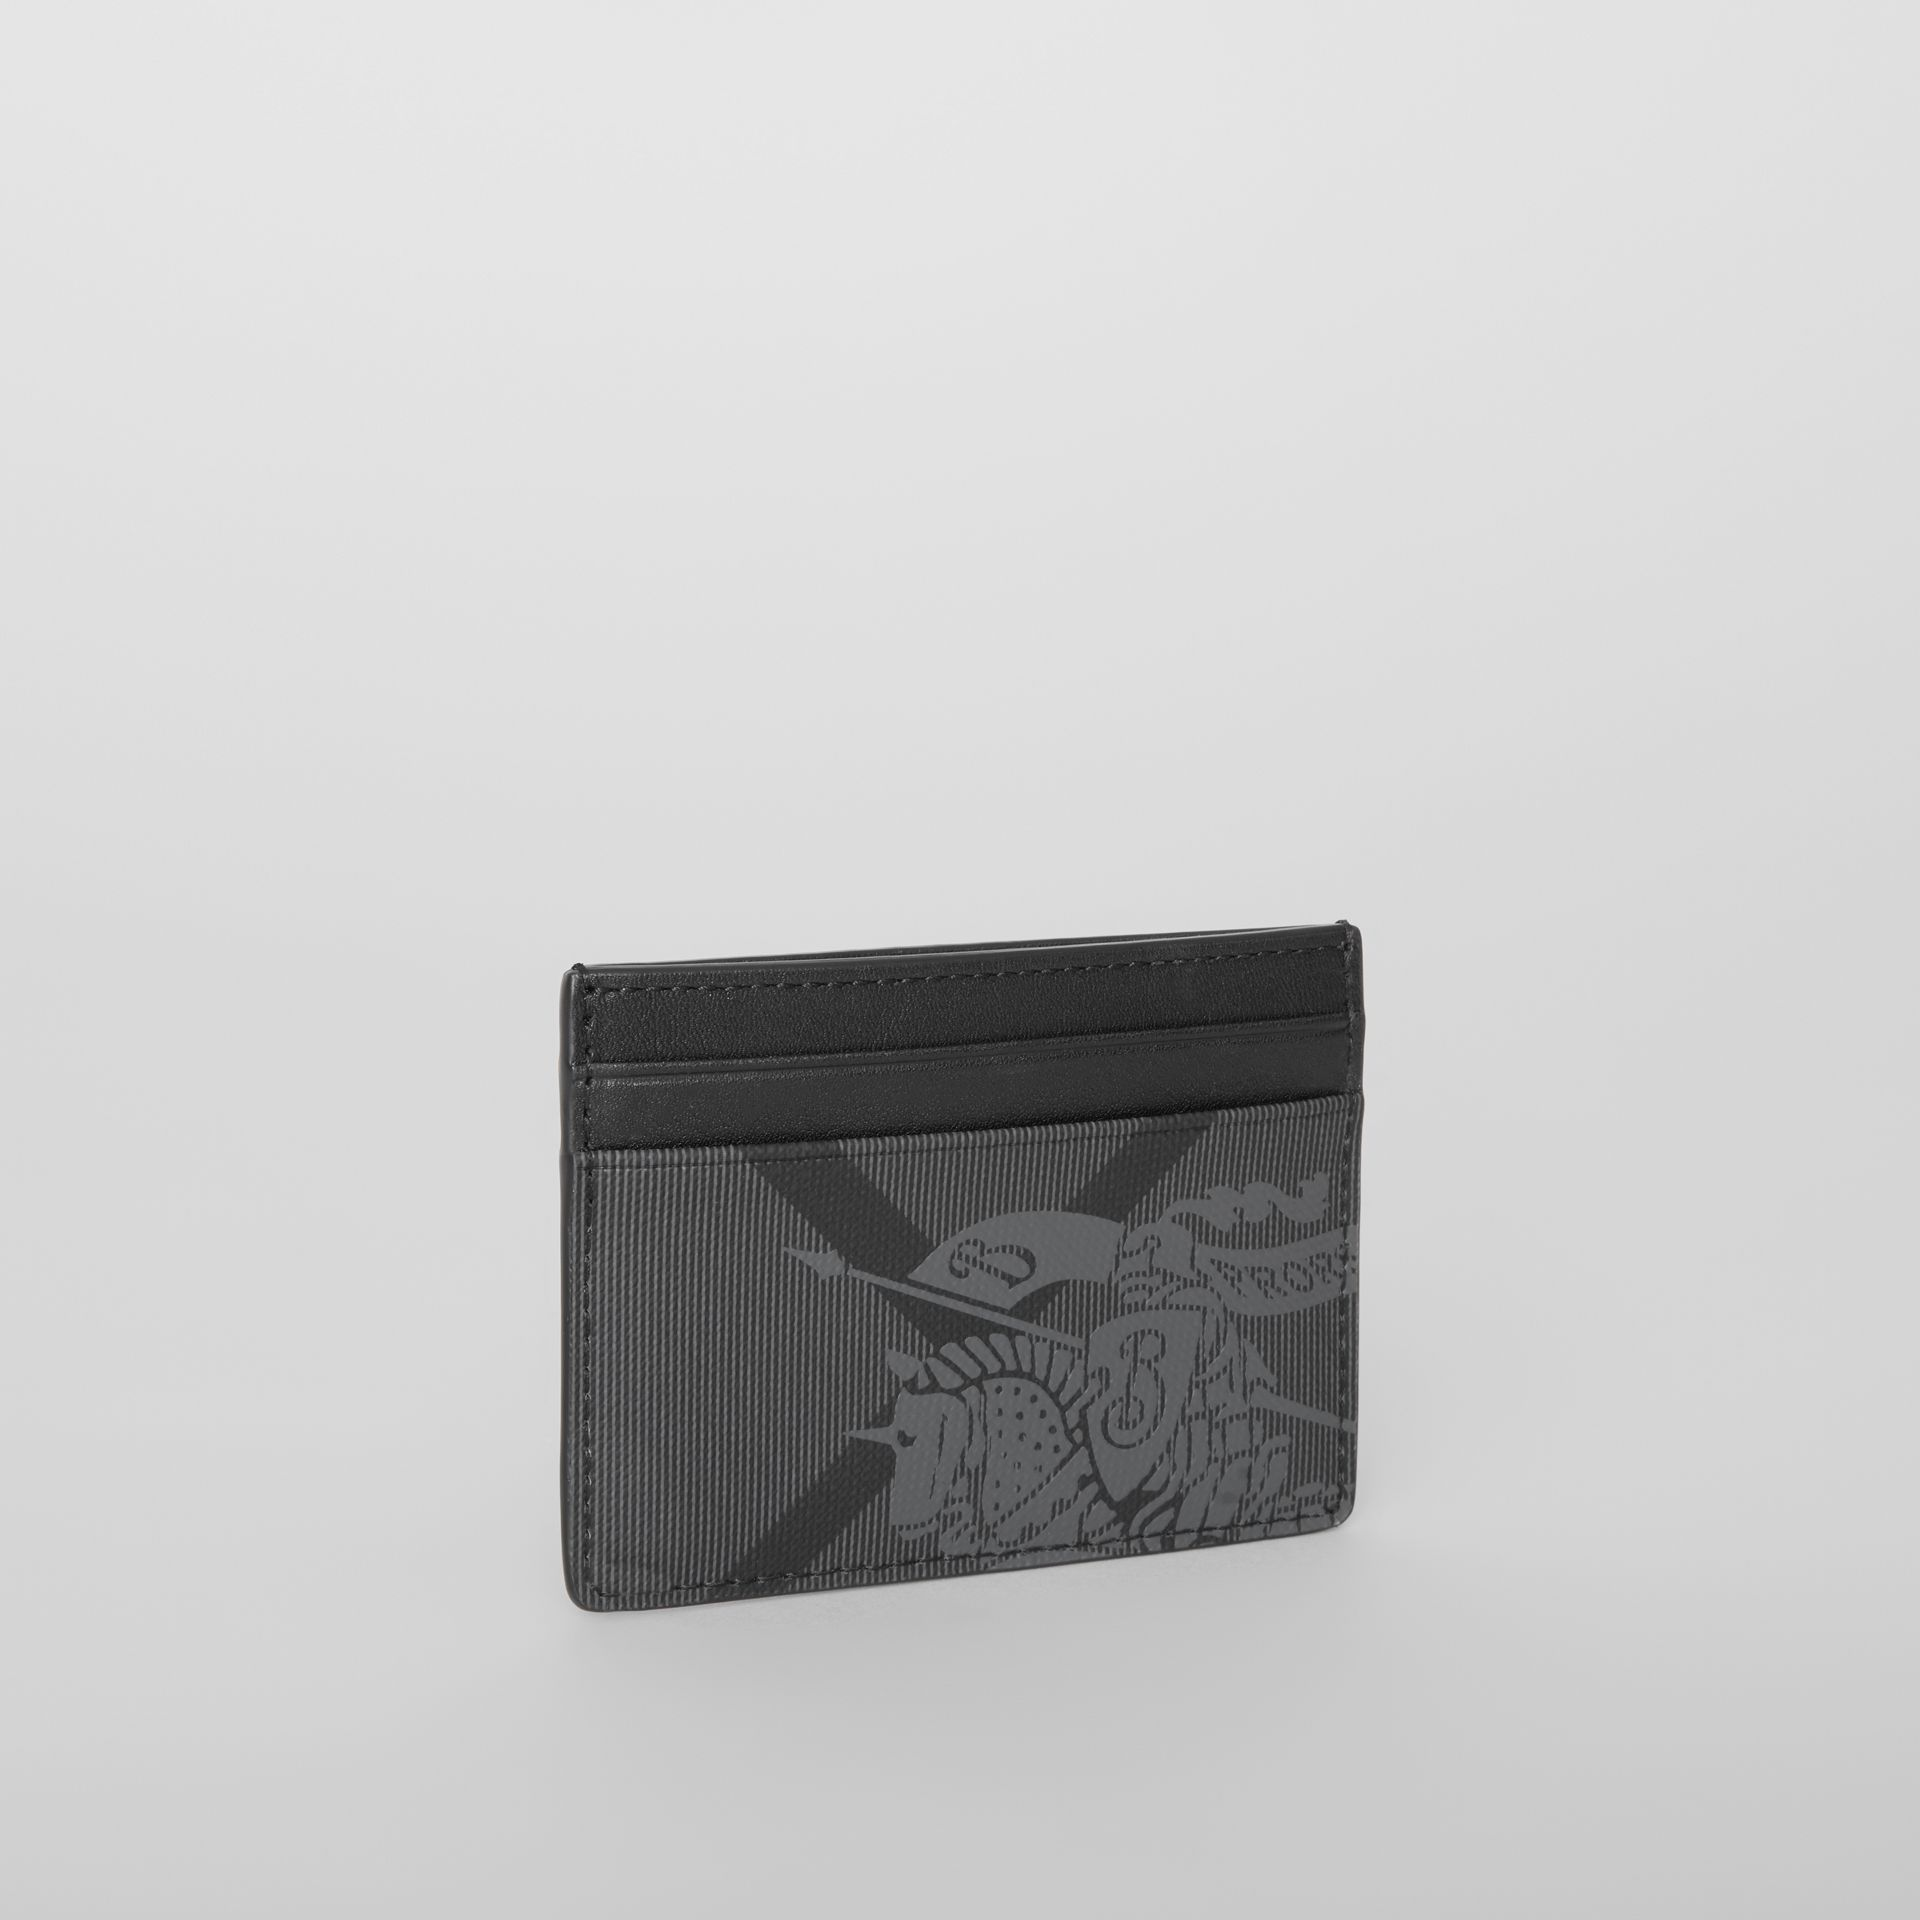 EKD London Check and Leather Card Case in Charcoal/black - Men | Burberry United Kingdom - gallery image 3